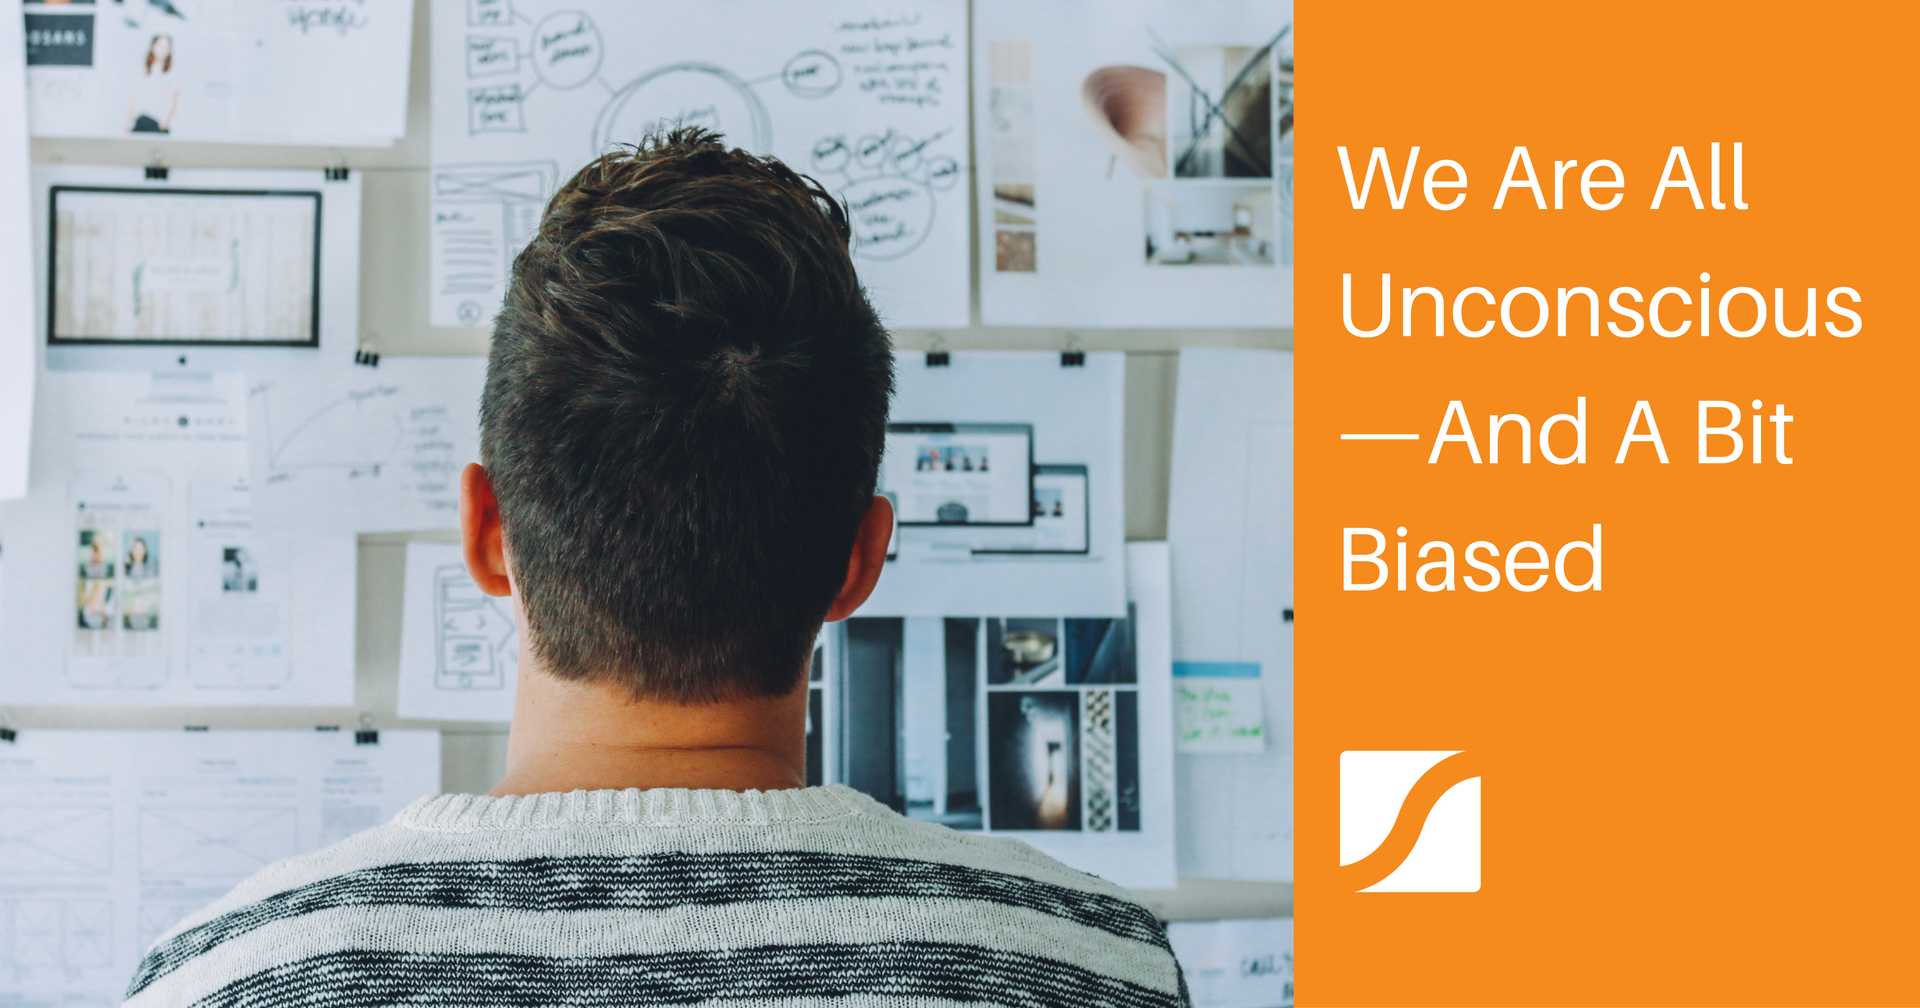 How To Work With Unconscious Bias In Your Organization